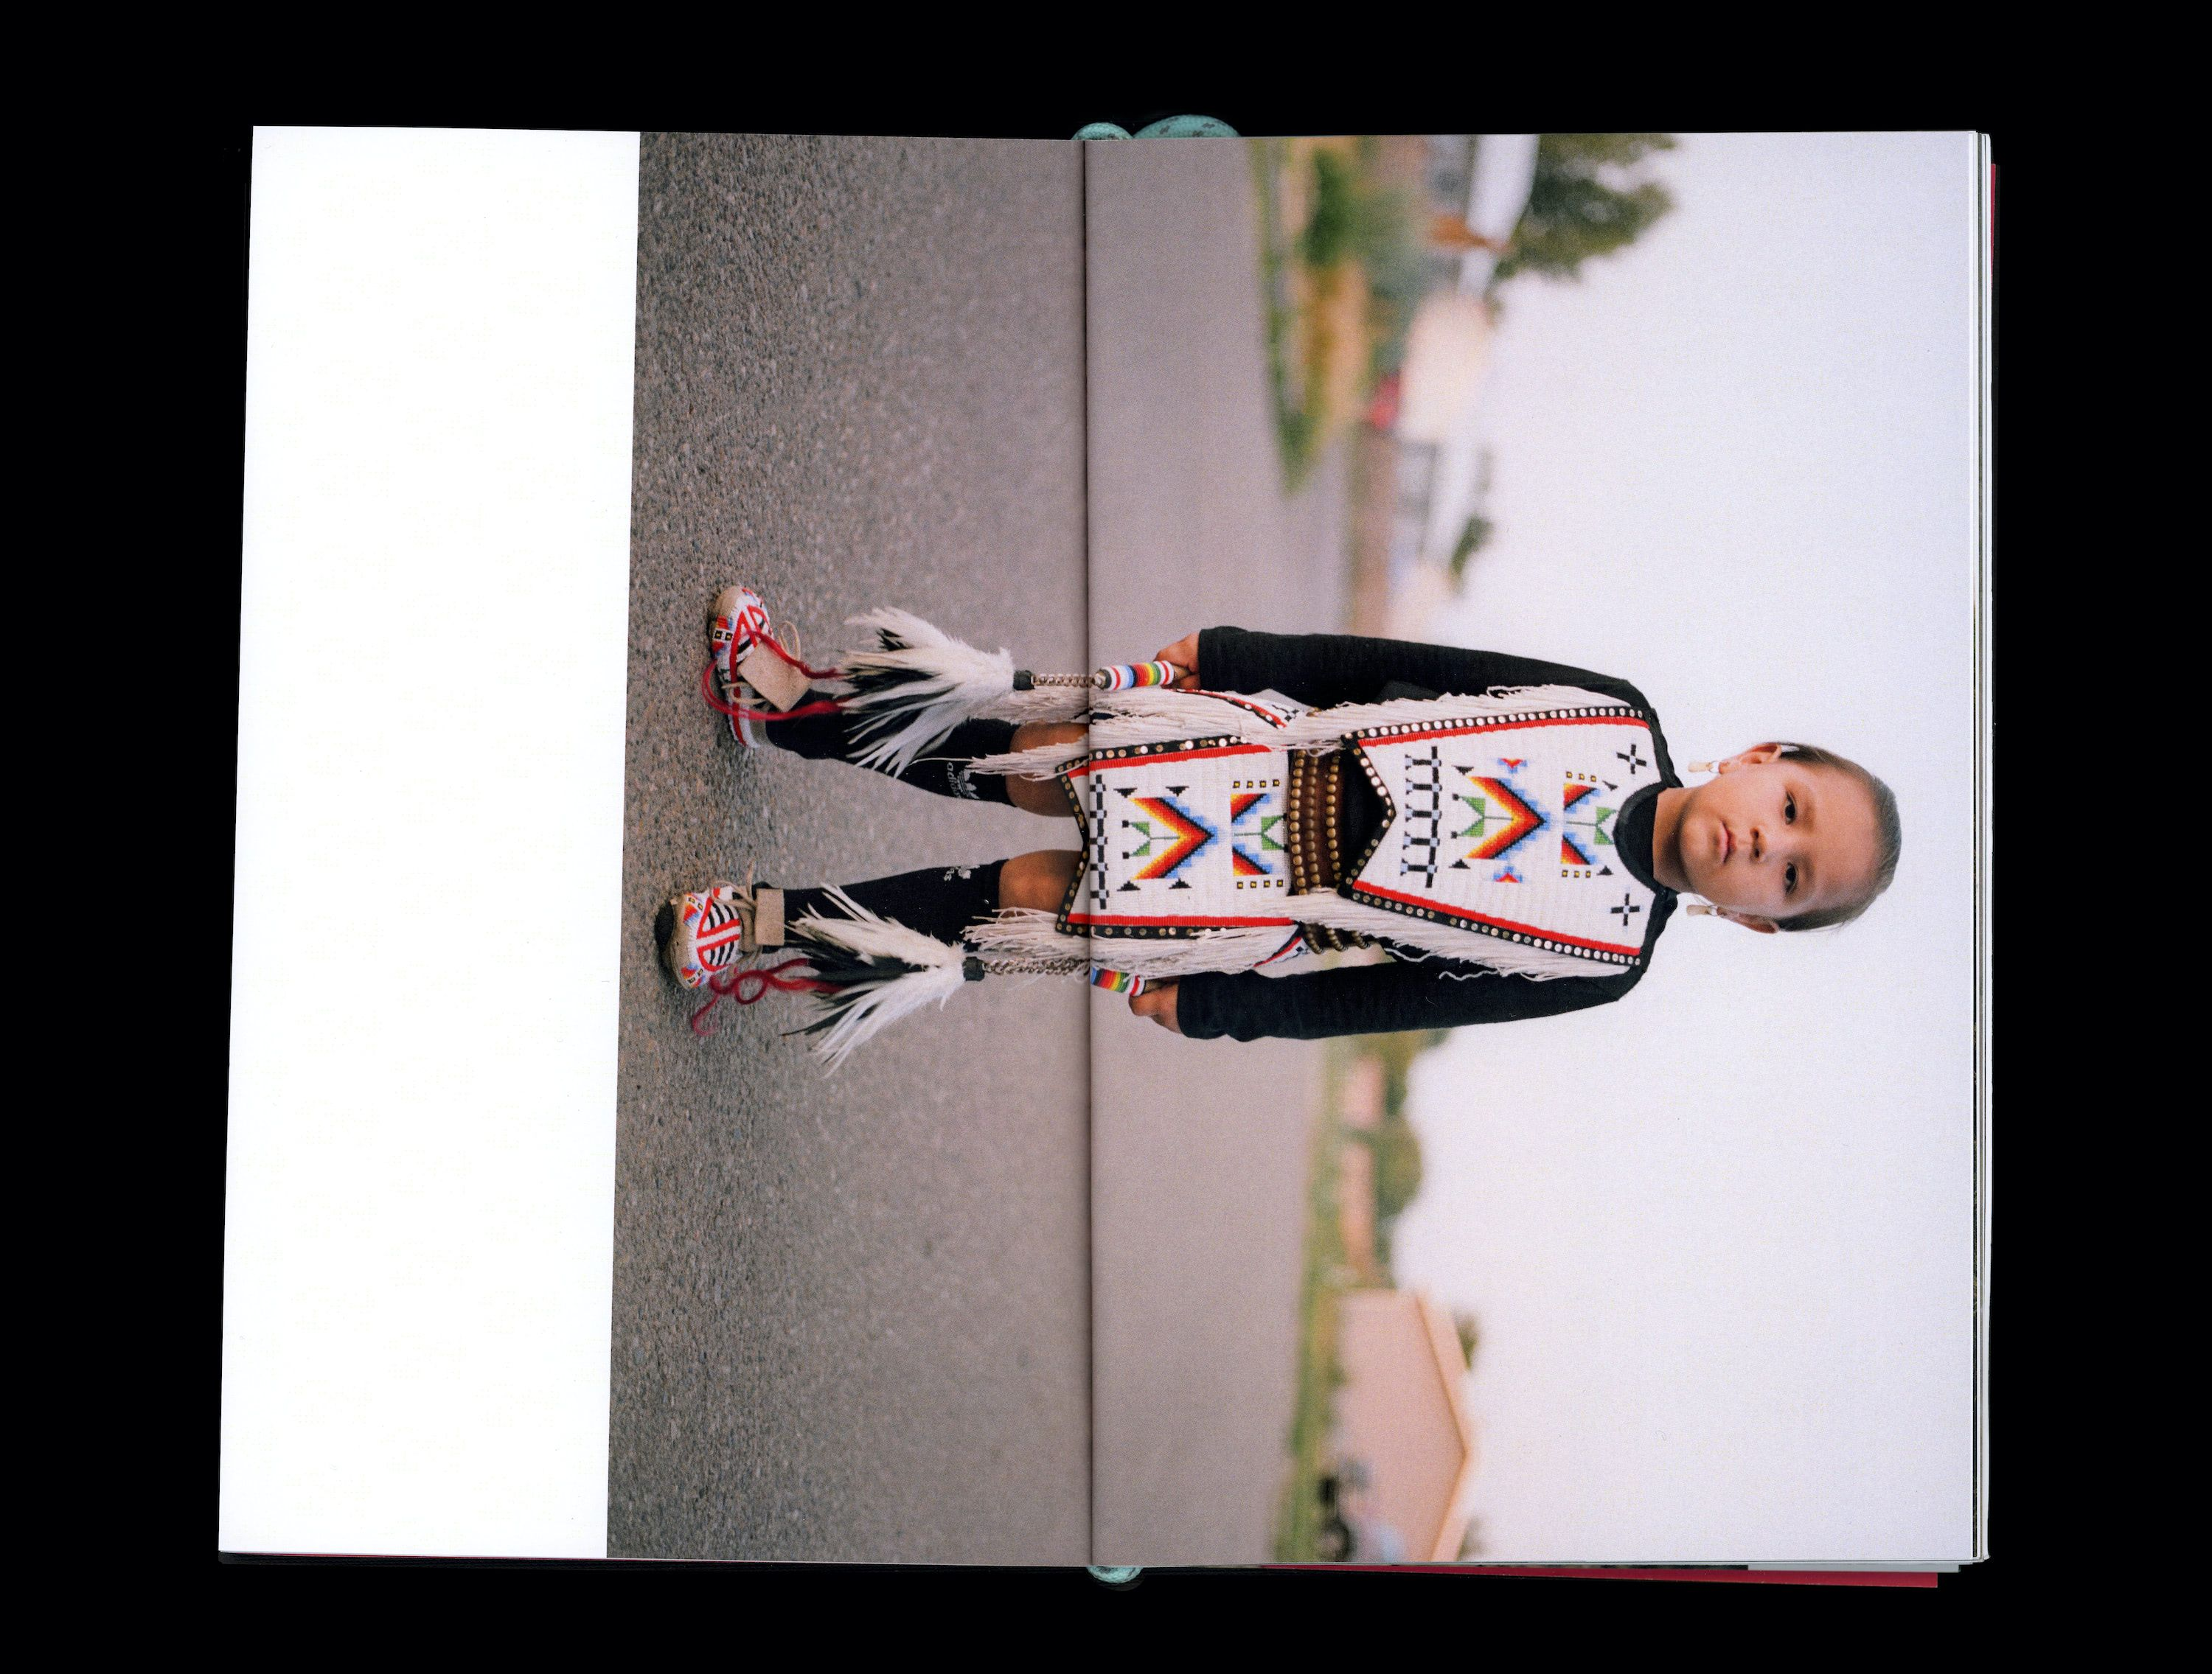 Photograph in book of Tokala Little Sky standing on asphalt road wearing traditional Native clothing